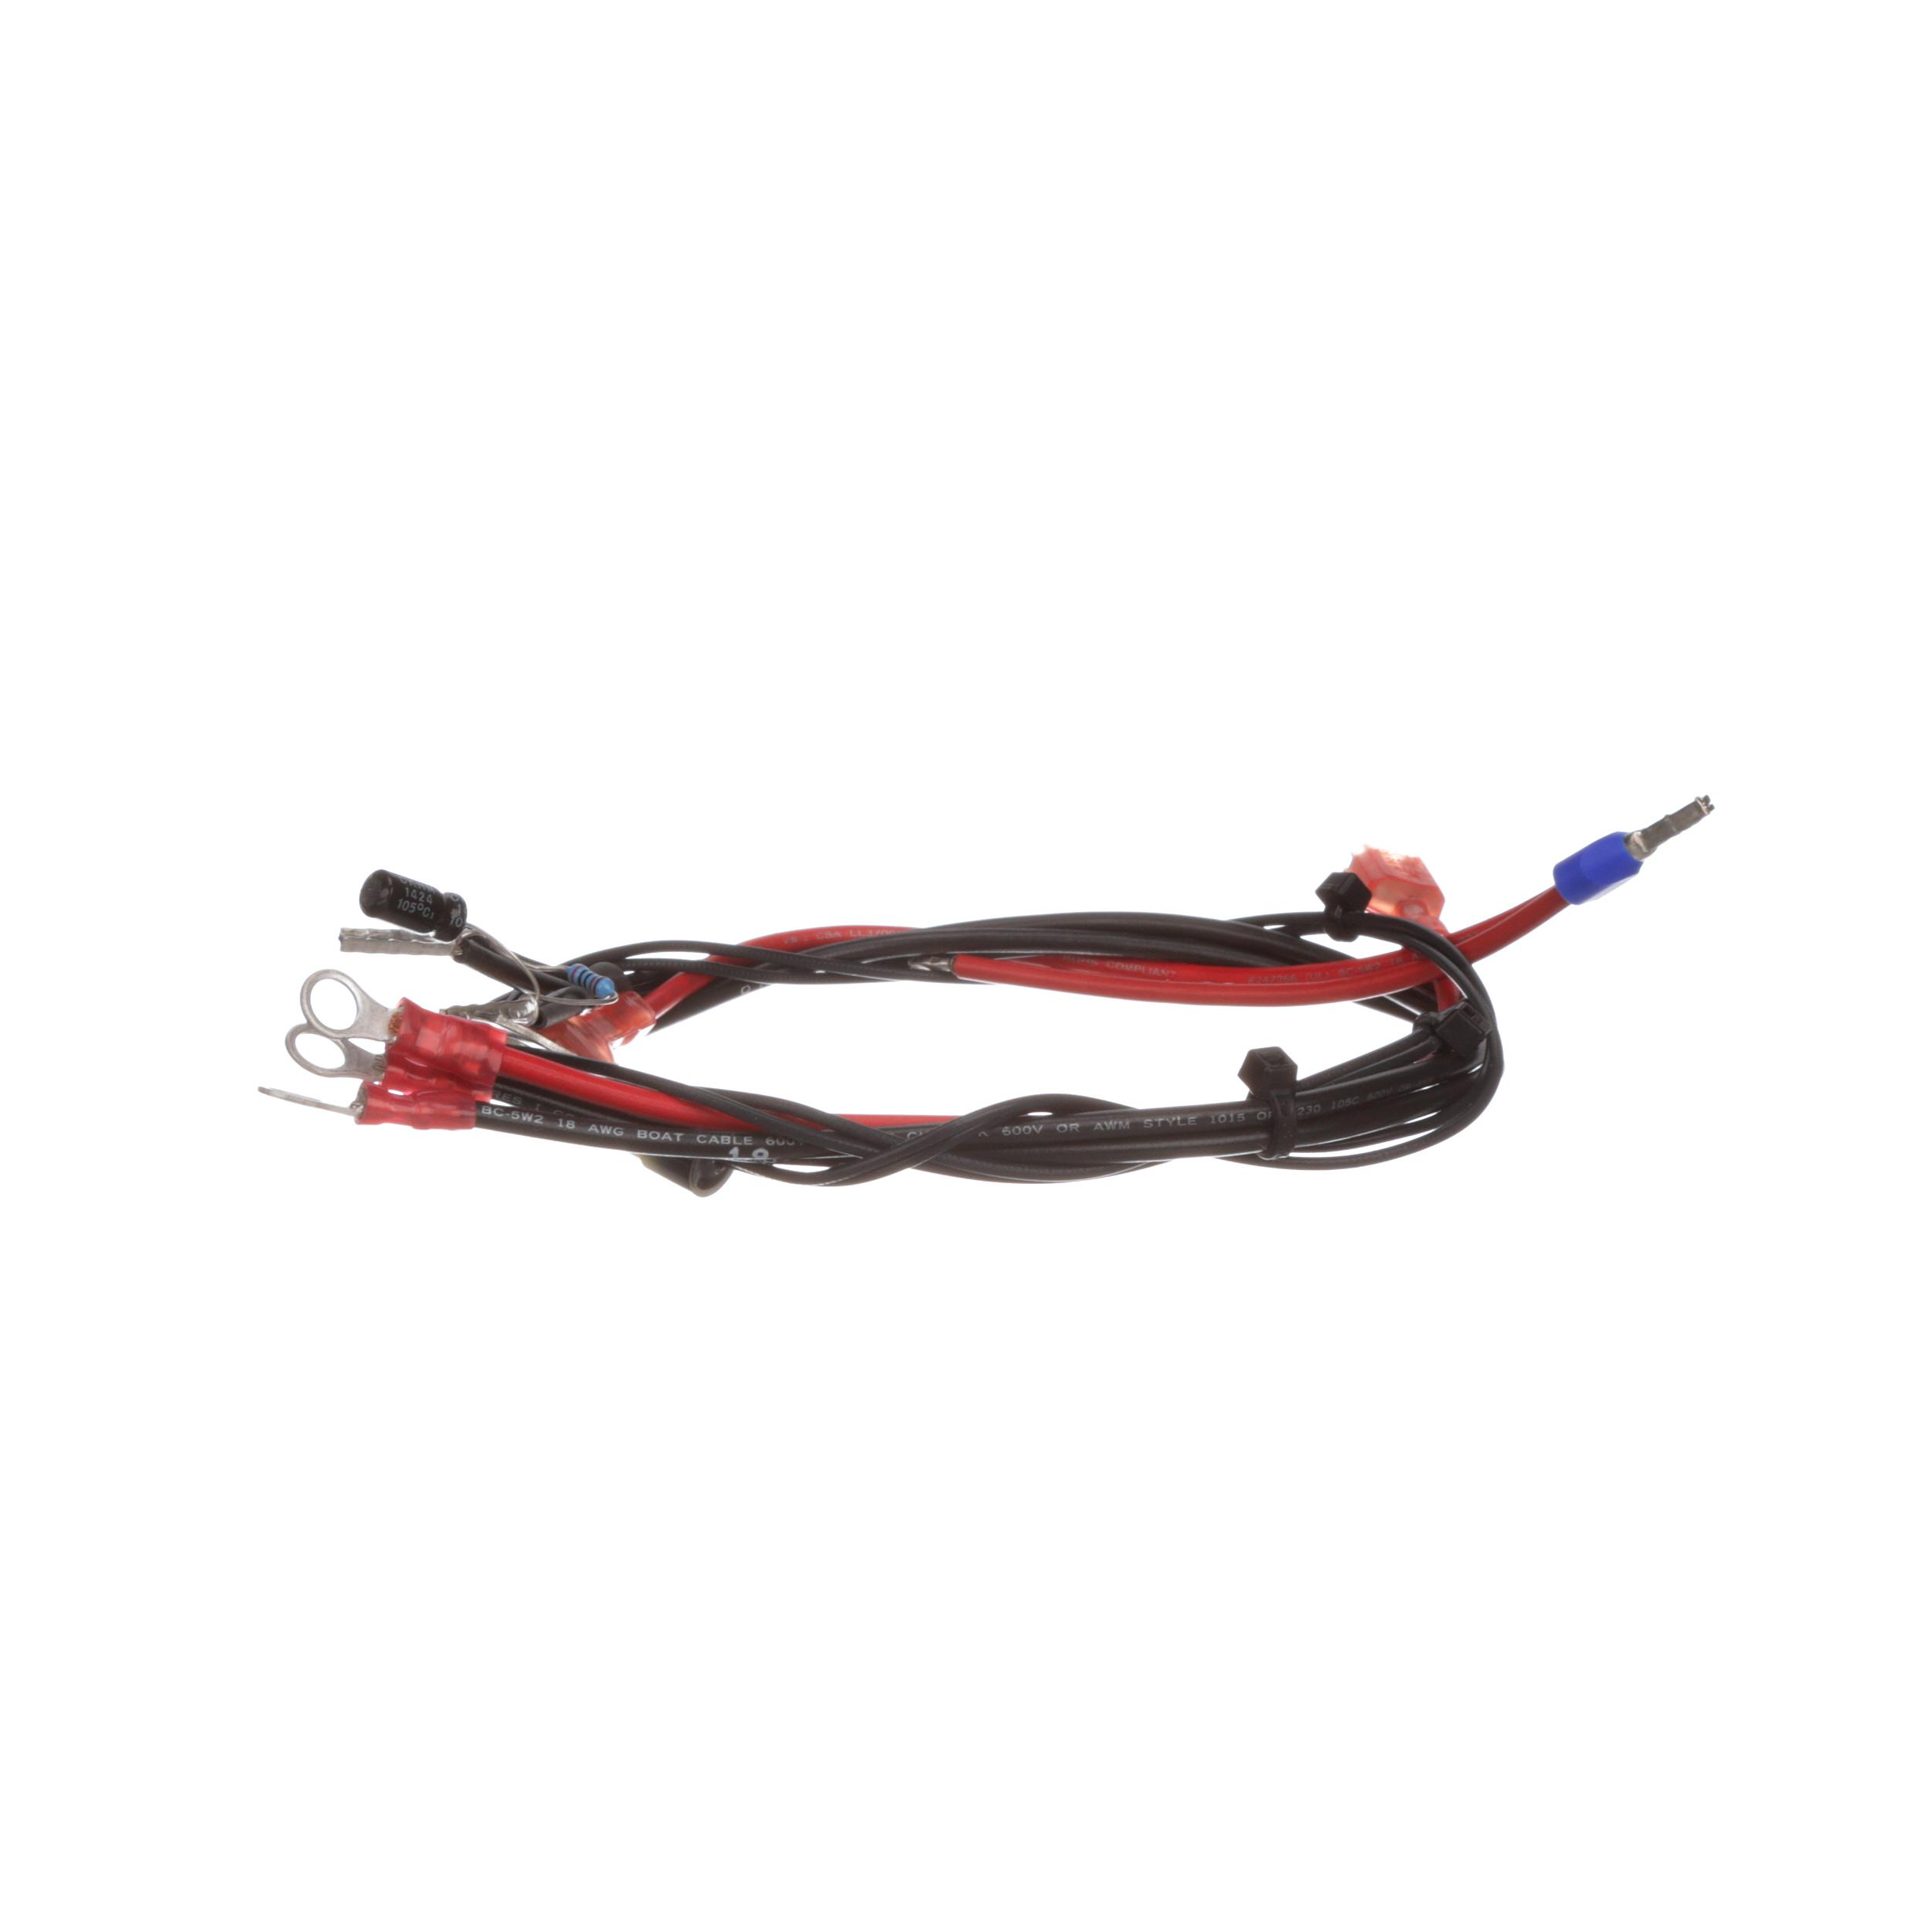 Garland Wire Harness Dc Efw800